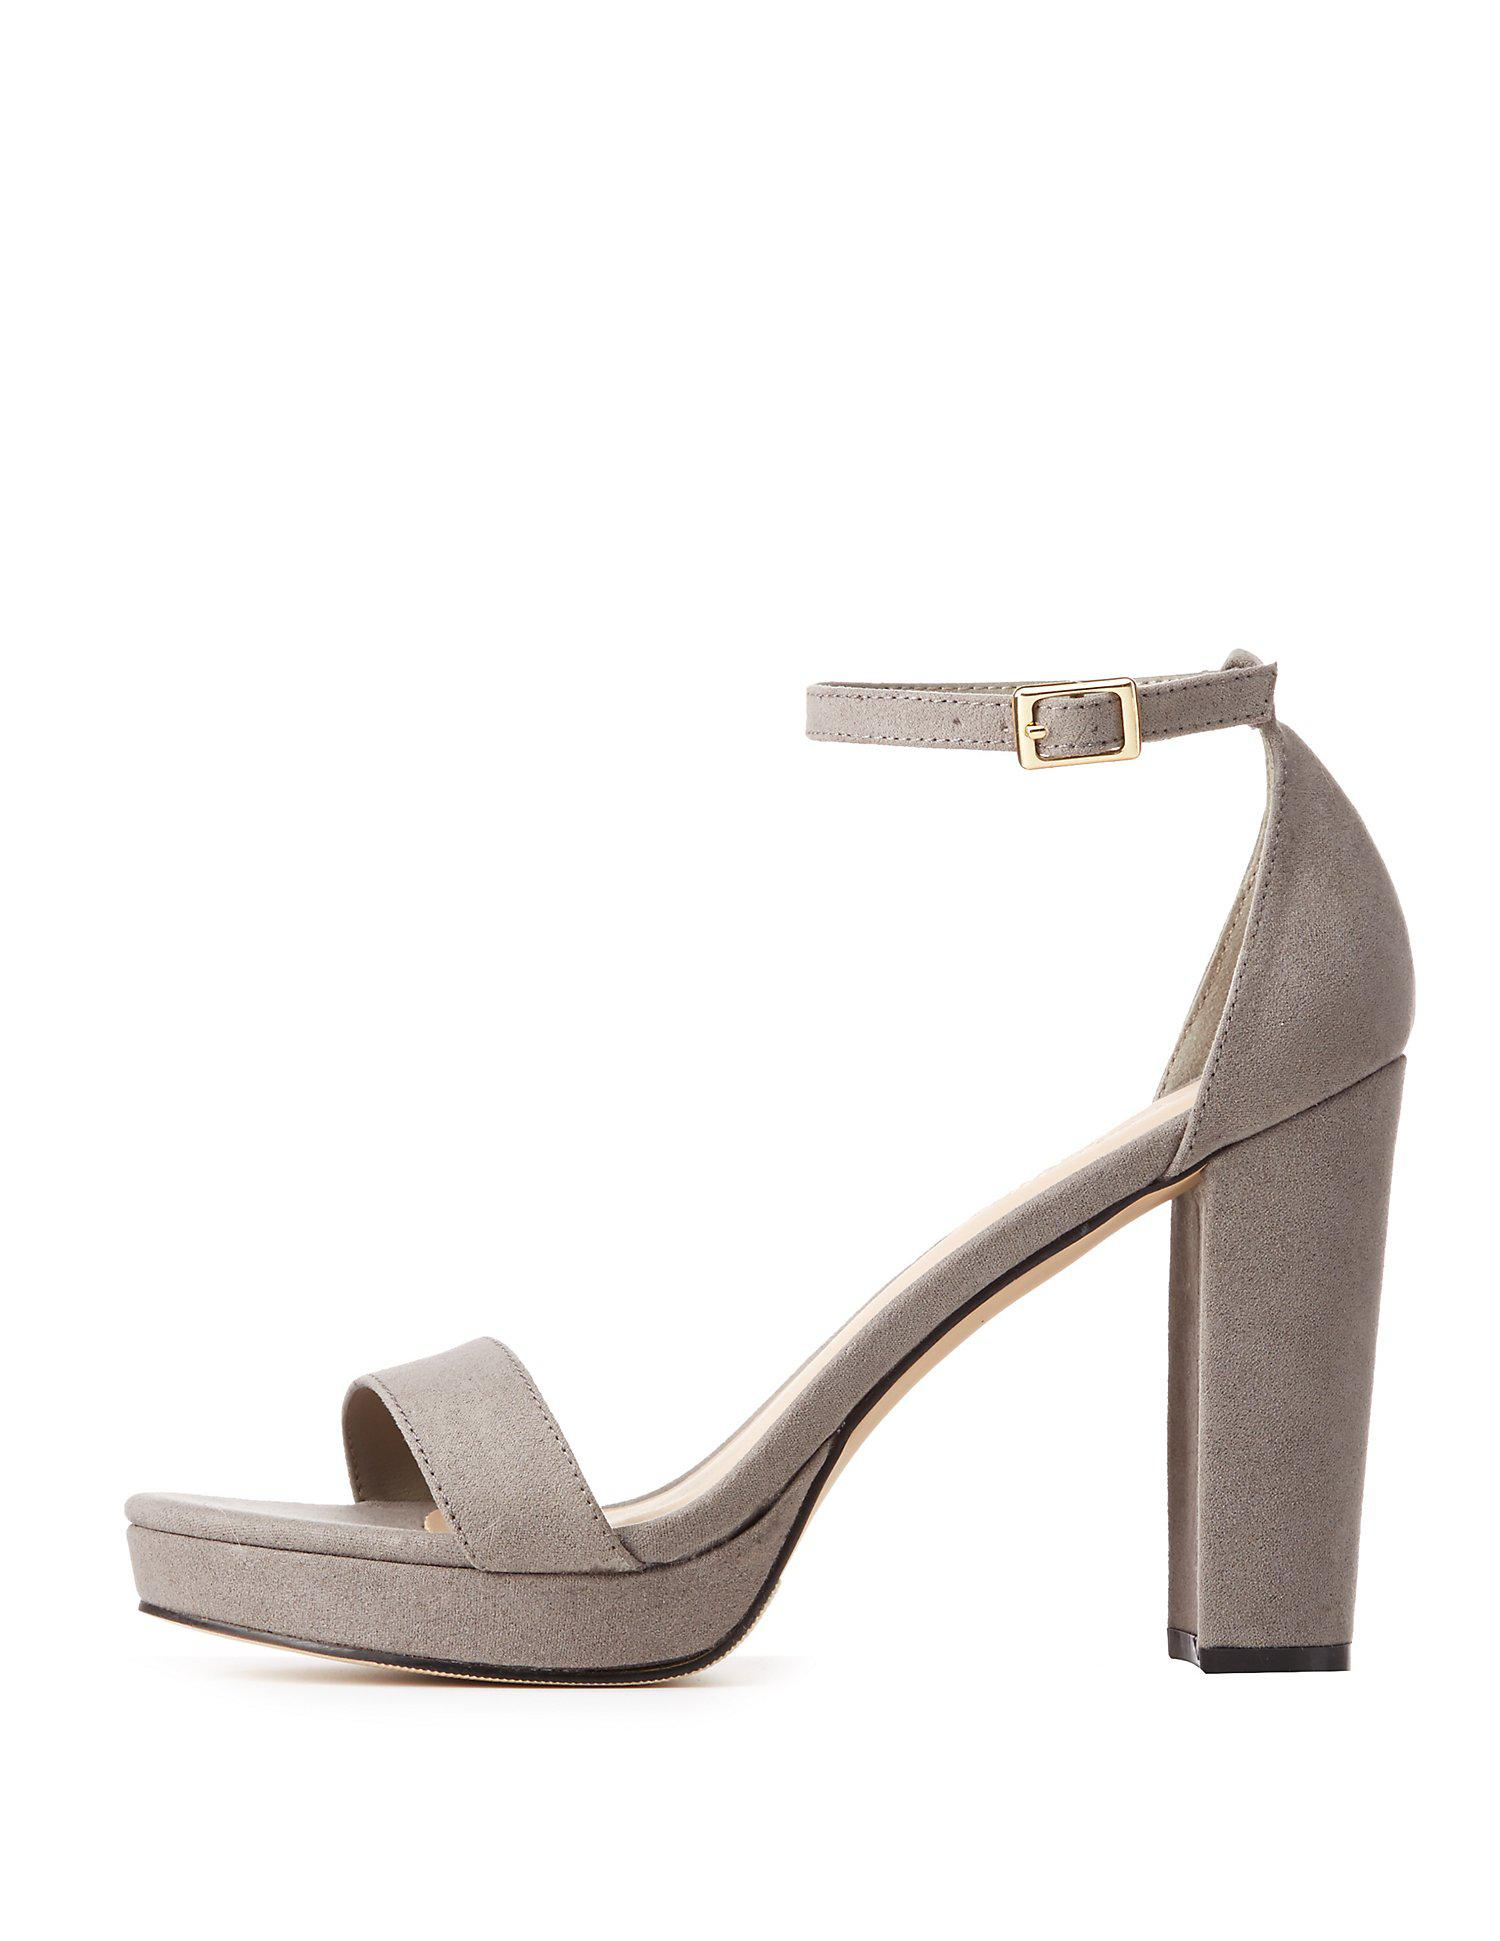 bd7efb986a9 Lyst - Charlotte Russe Two-piece Platform Sandals in Gray